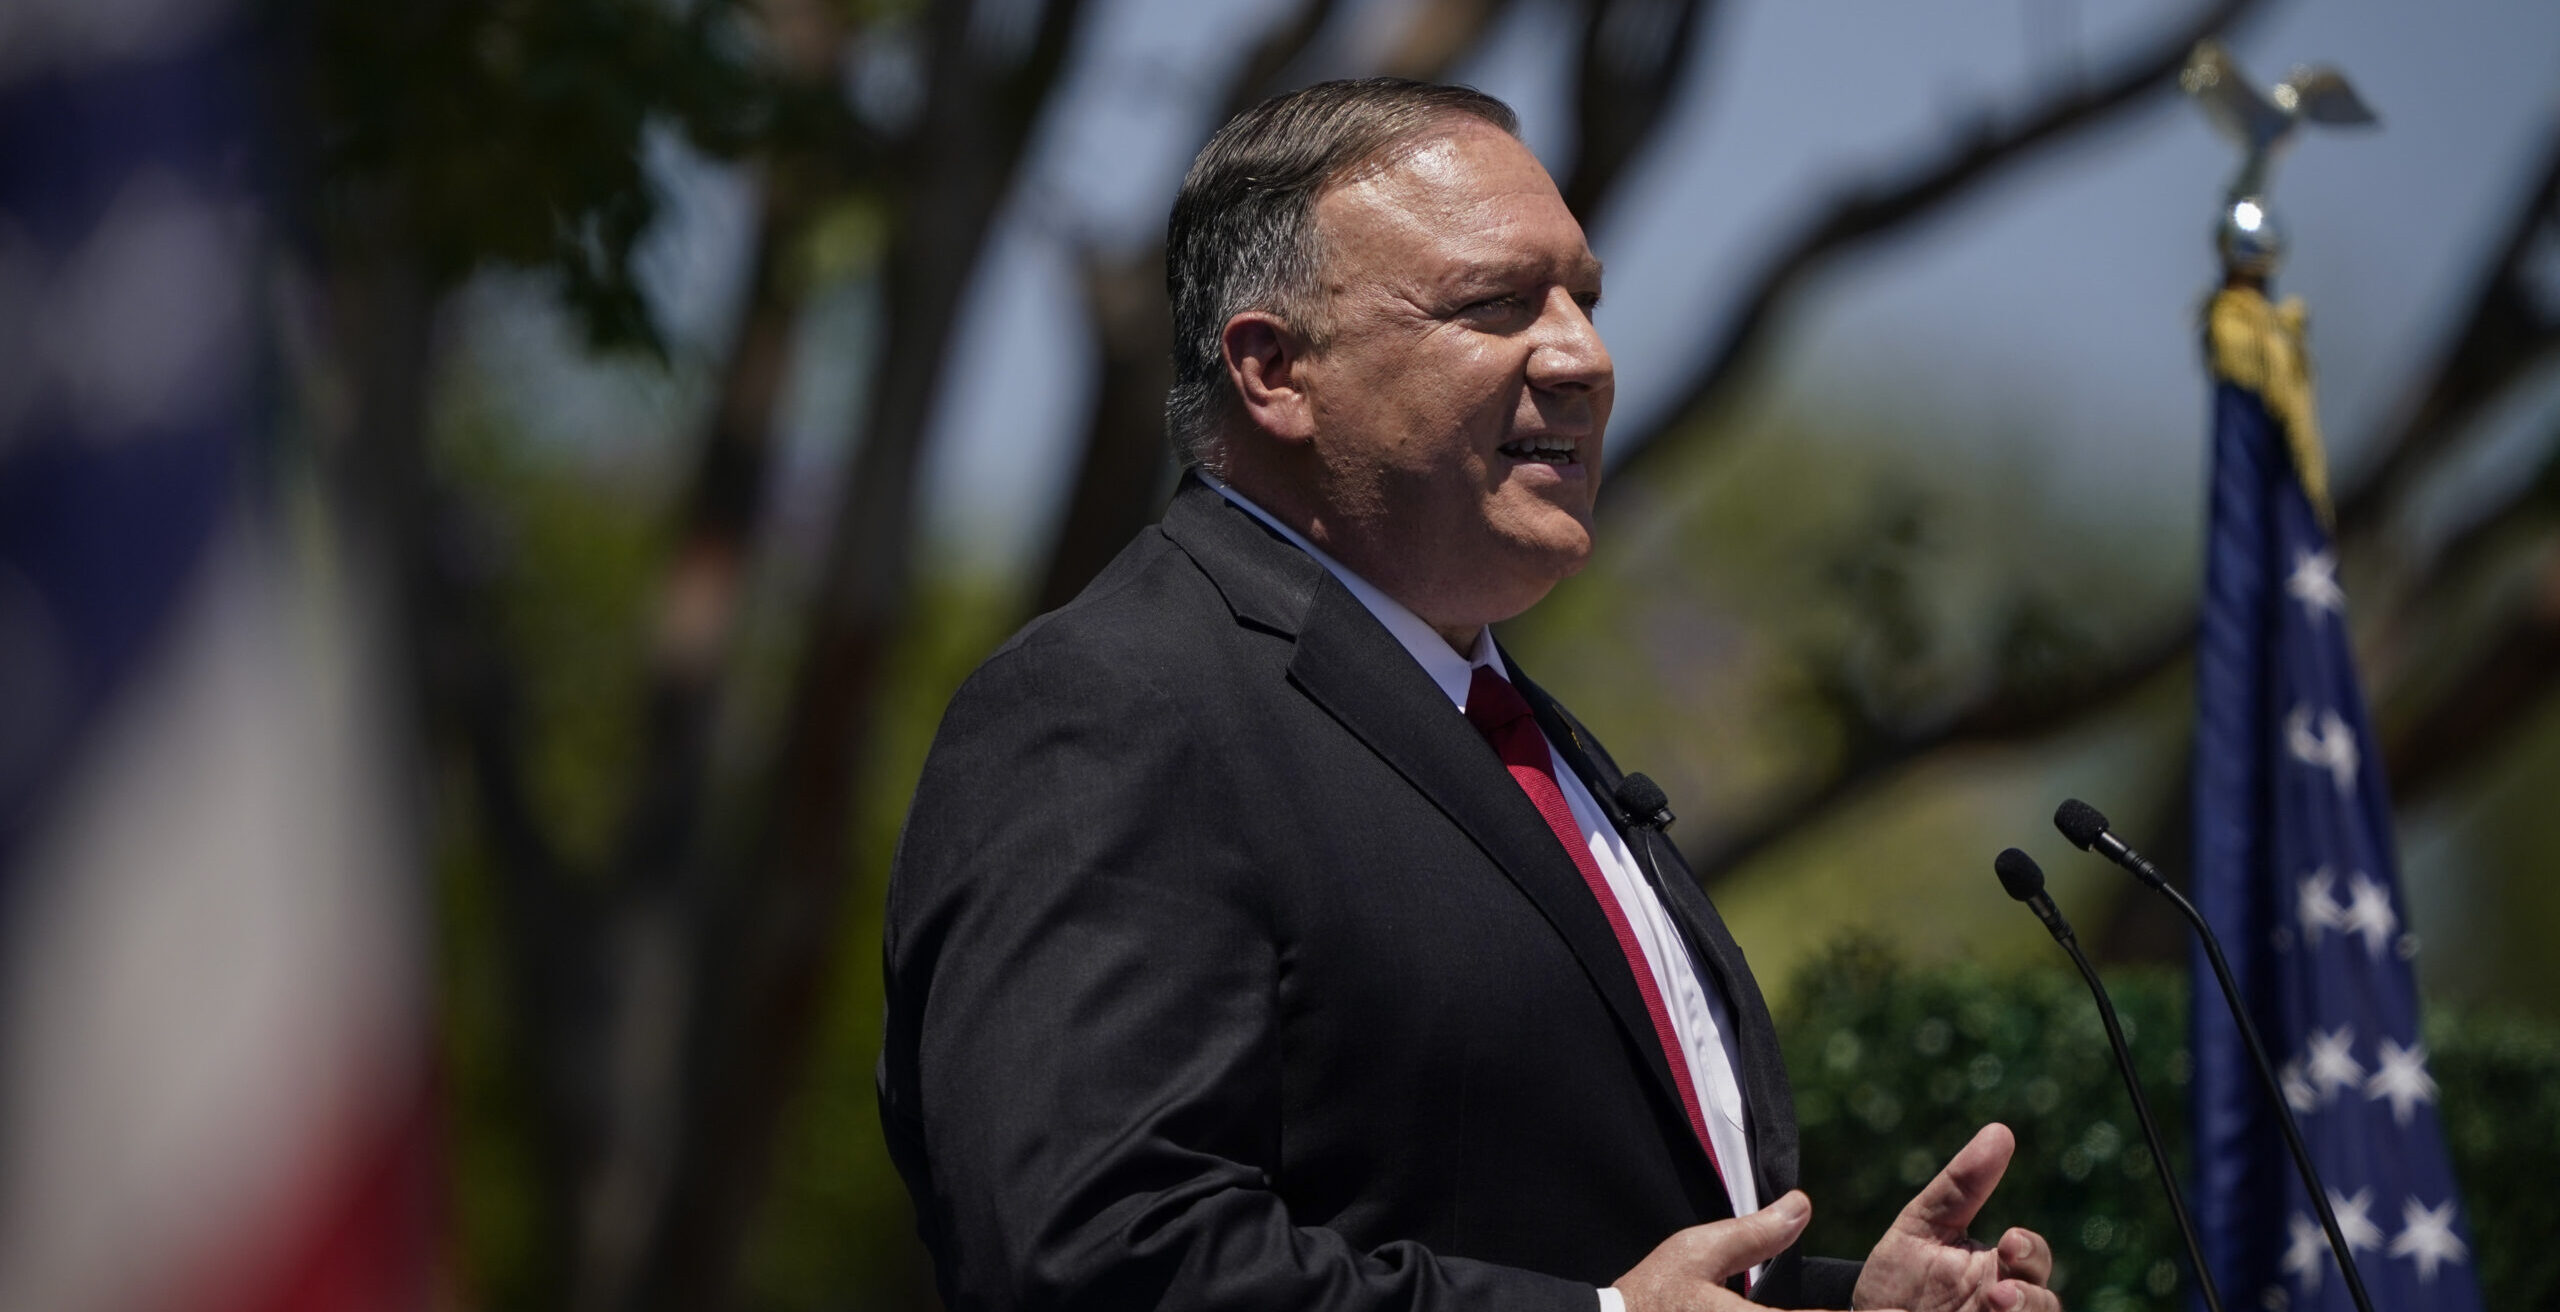 Secretary of State Mike Pompeo speaks at the Richard Nixon Presidential Library, Thursday, July 23, 2020, in Yorba Linda, Calif. (AP Photo/Ashley Landis, Pool)